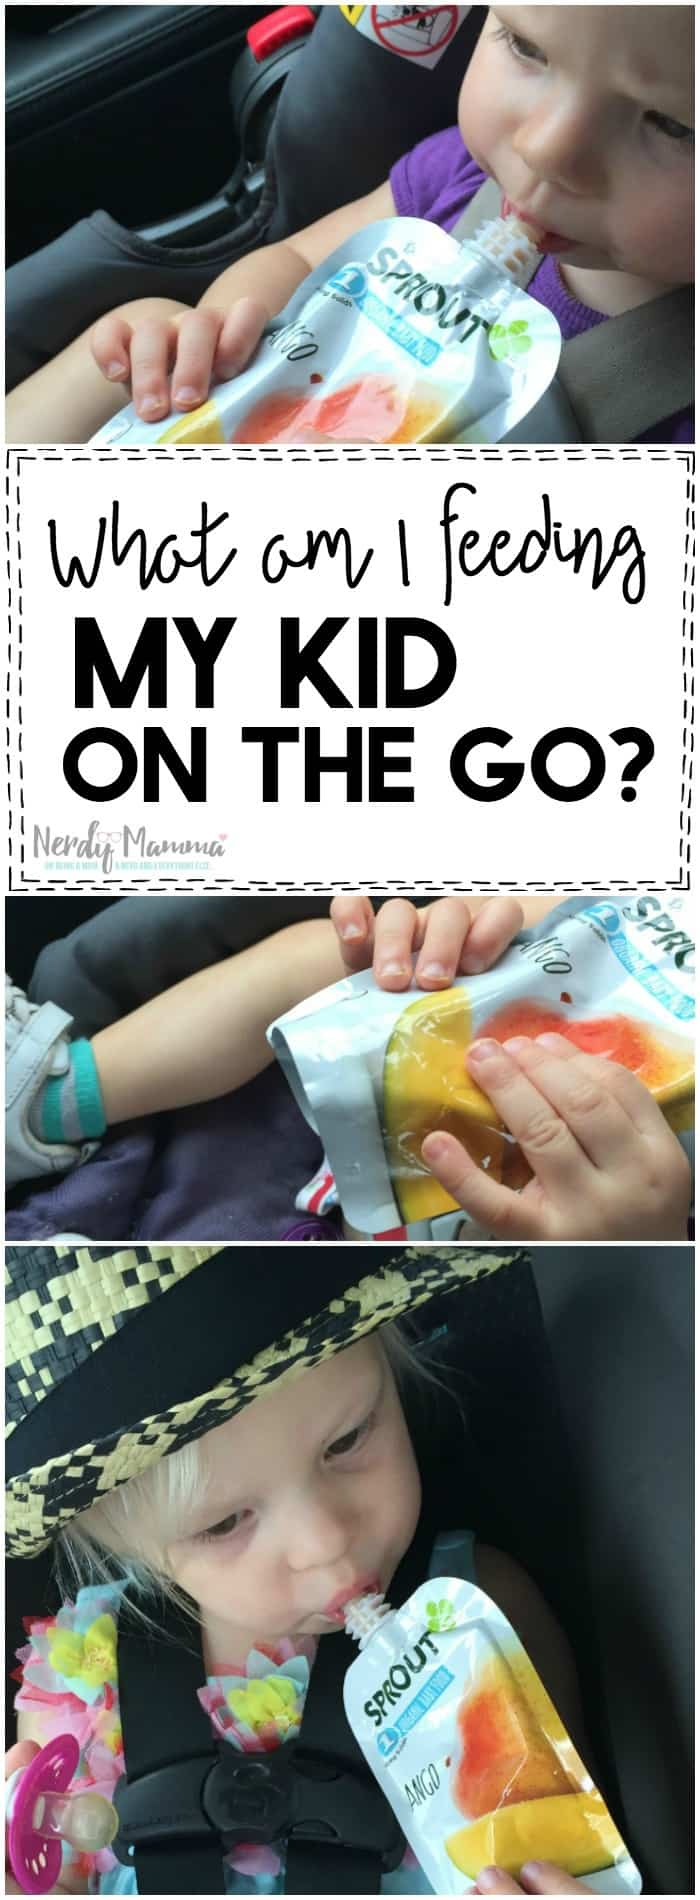 I love this mom's thoughts on what am I really feeding my kid on the go. She's so right! I had no idea.